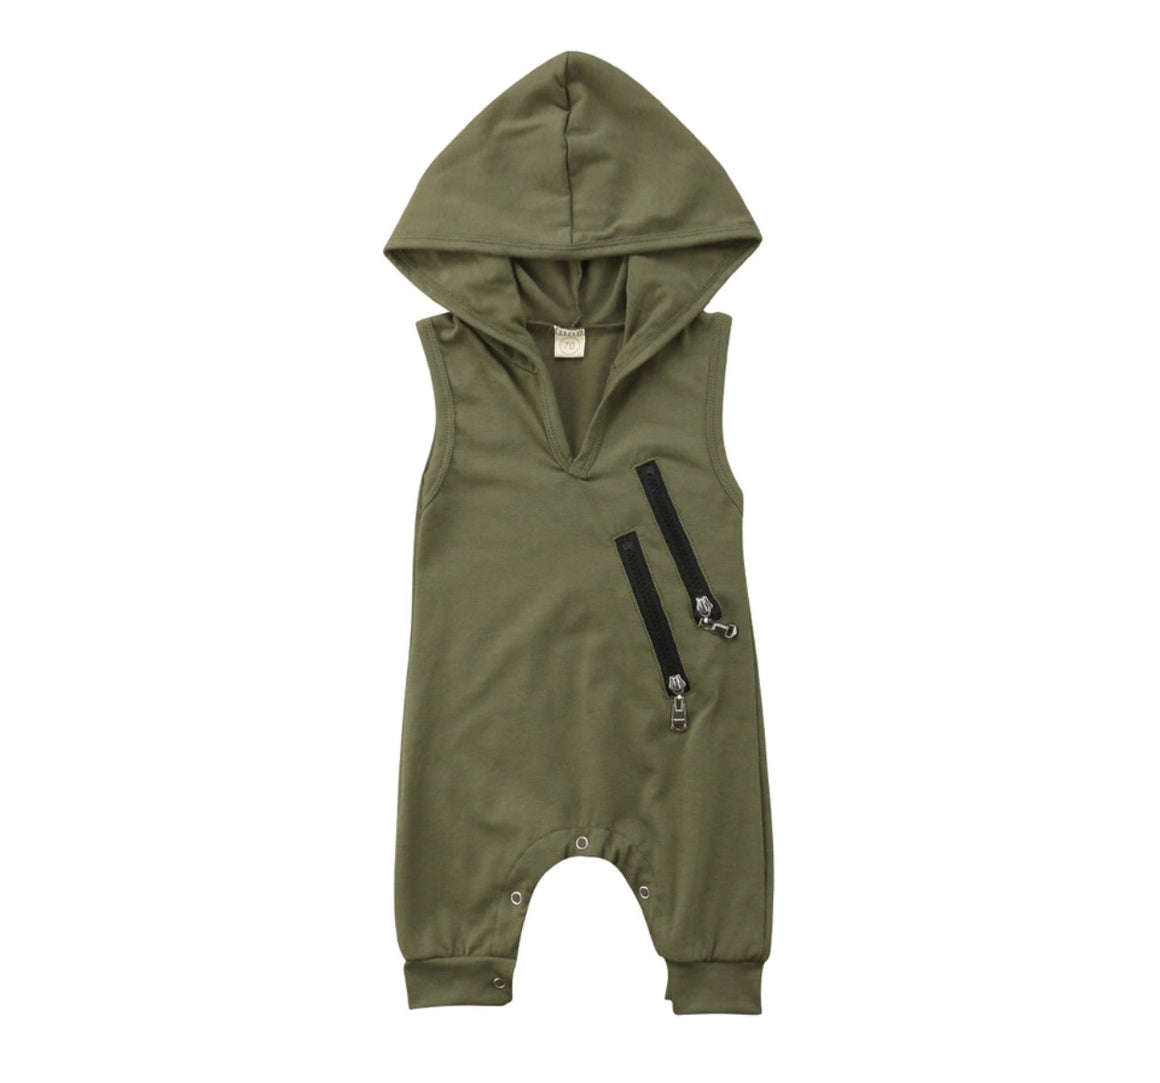 Khaki Hooded Onesie